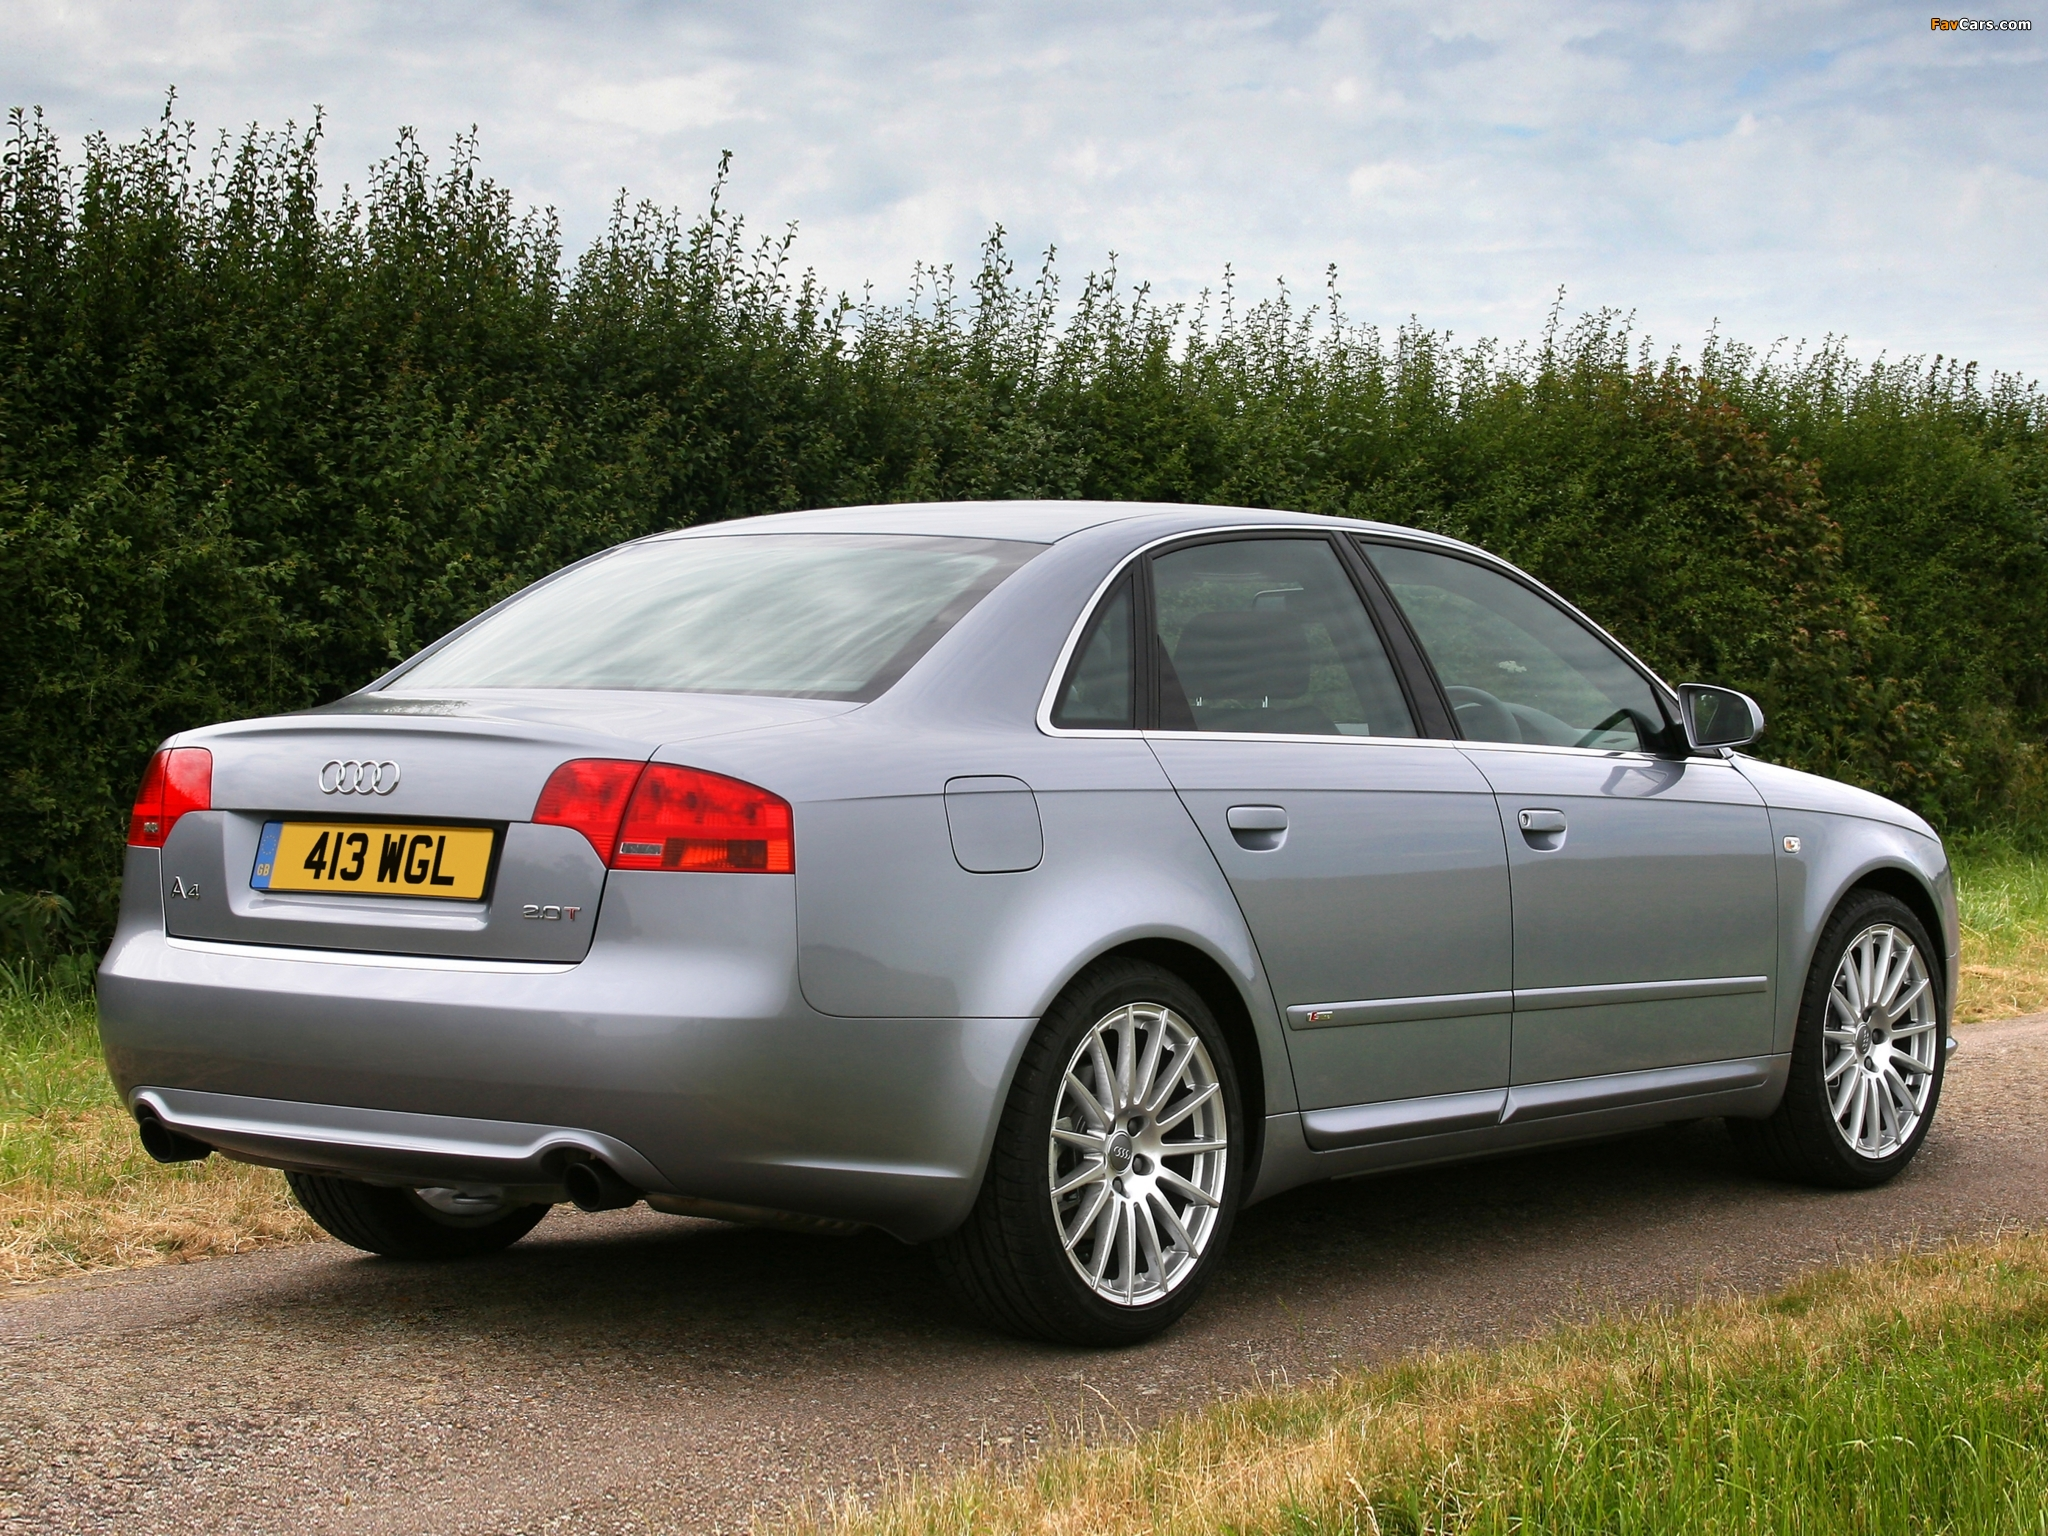 audi a4 2 0t s line sedan uk spec b7 8e 2004 2007 images 2048x1536. Black Bedroom Furniture Sets. Home Design Ideas